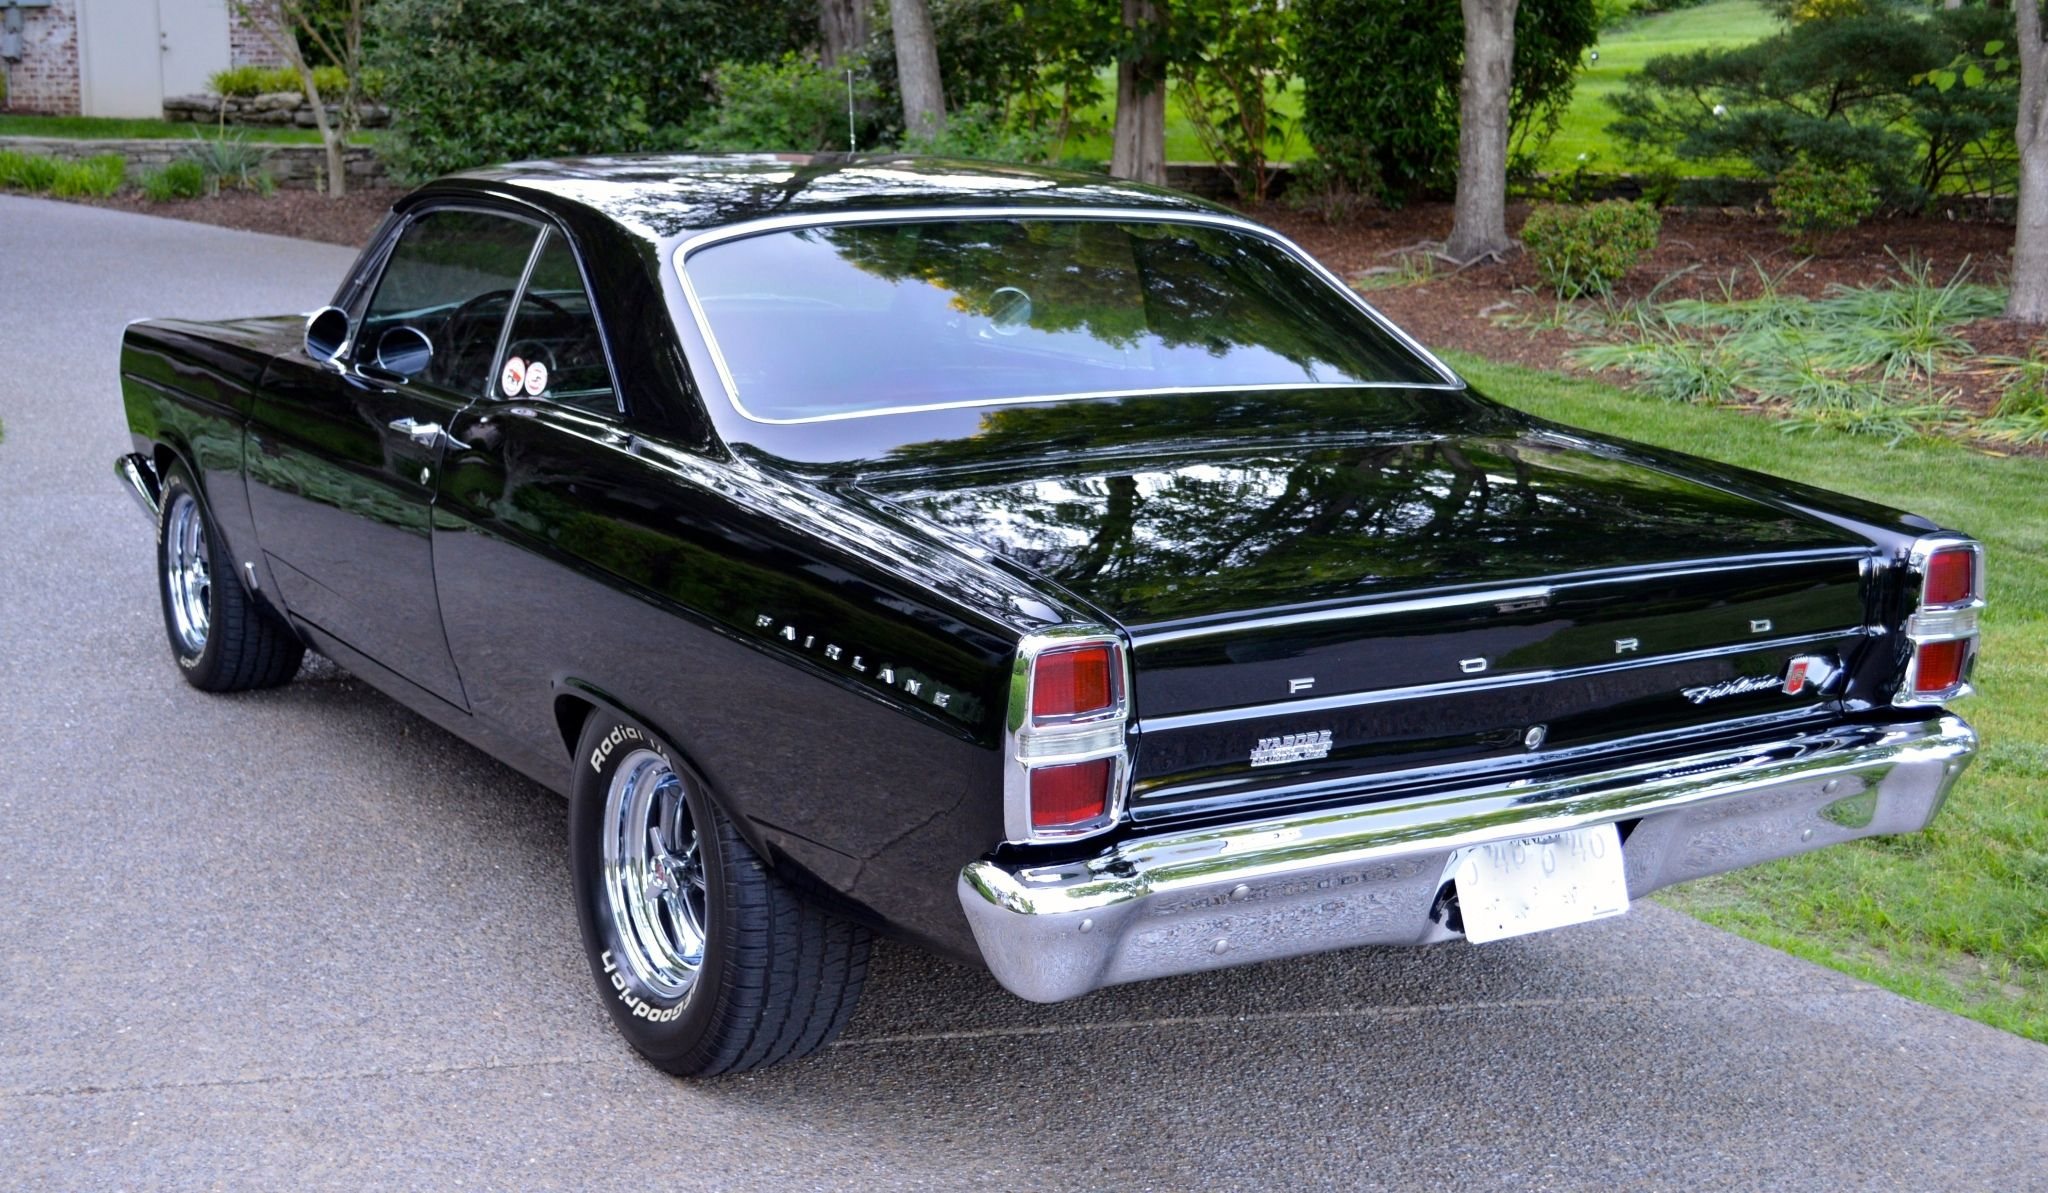 500HP 1966 Ford Fairlane GT 5-Speed | Ford fairlane | Ford